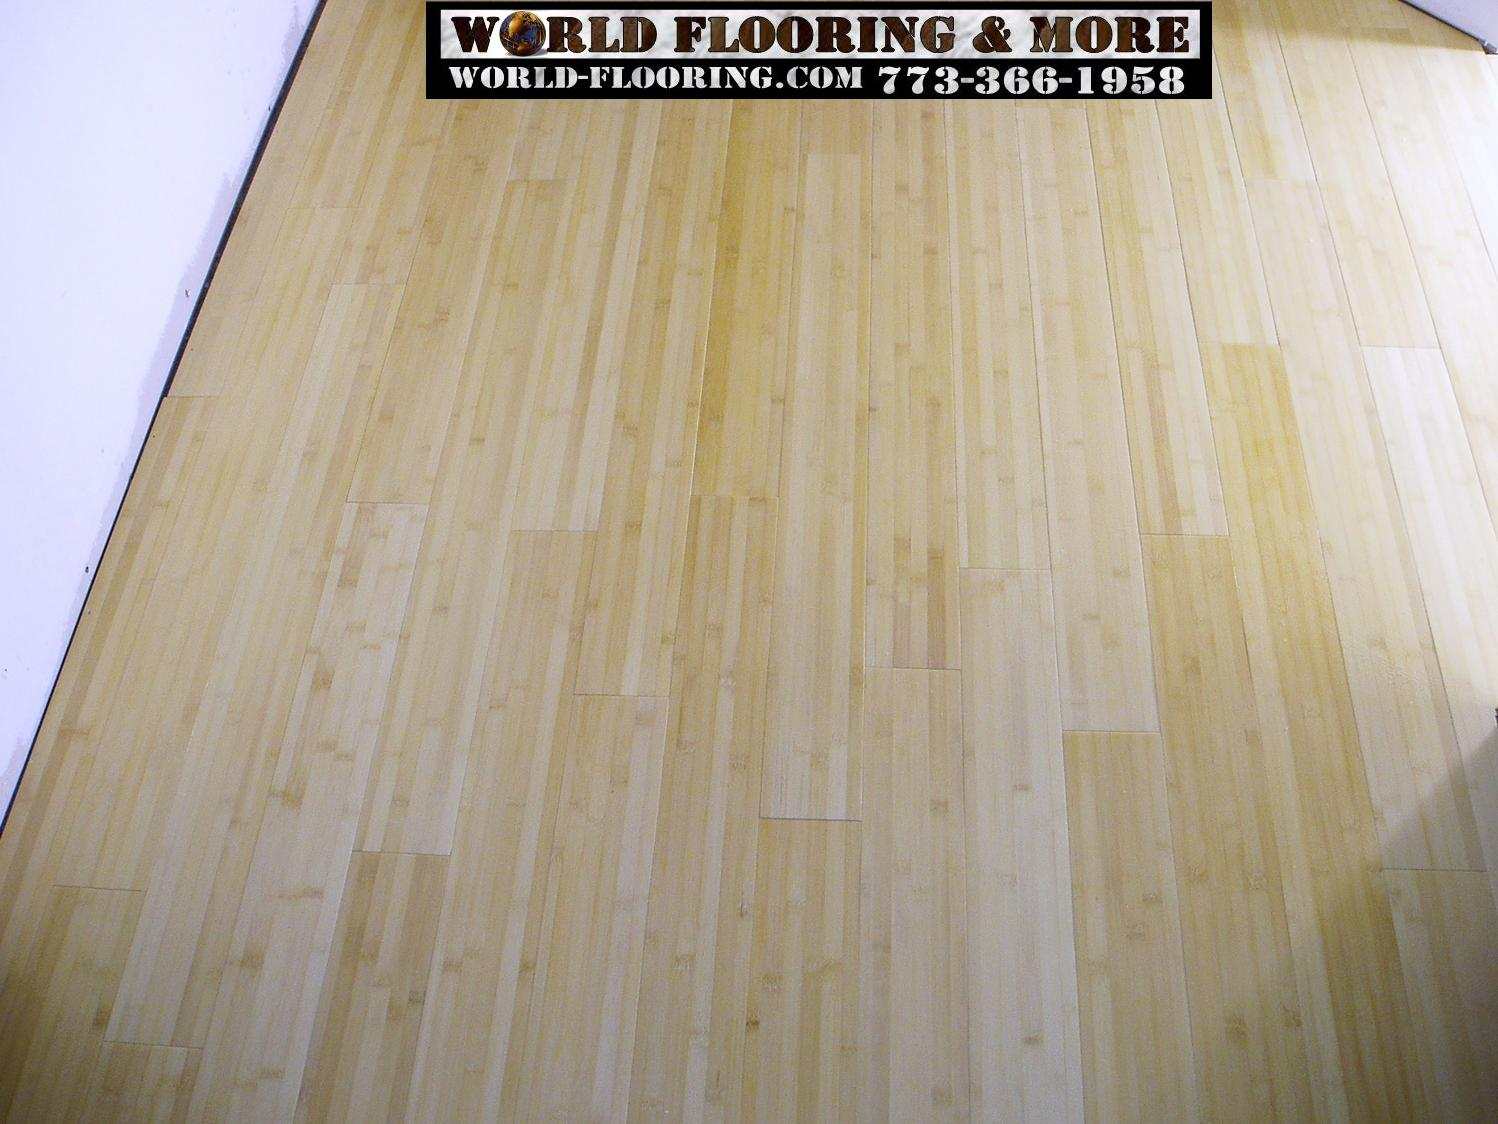 Bamboo floor prefinished engineered and laminate flooring